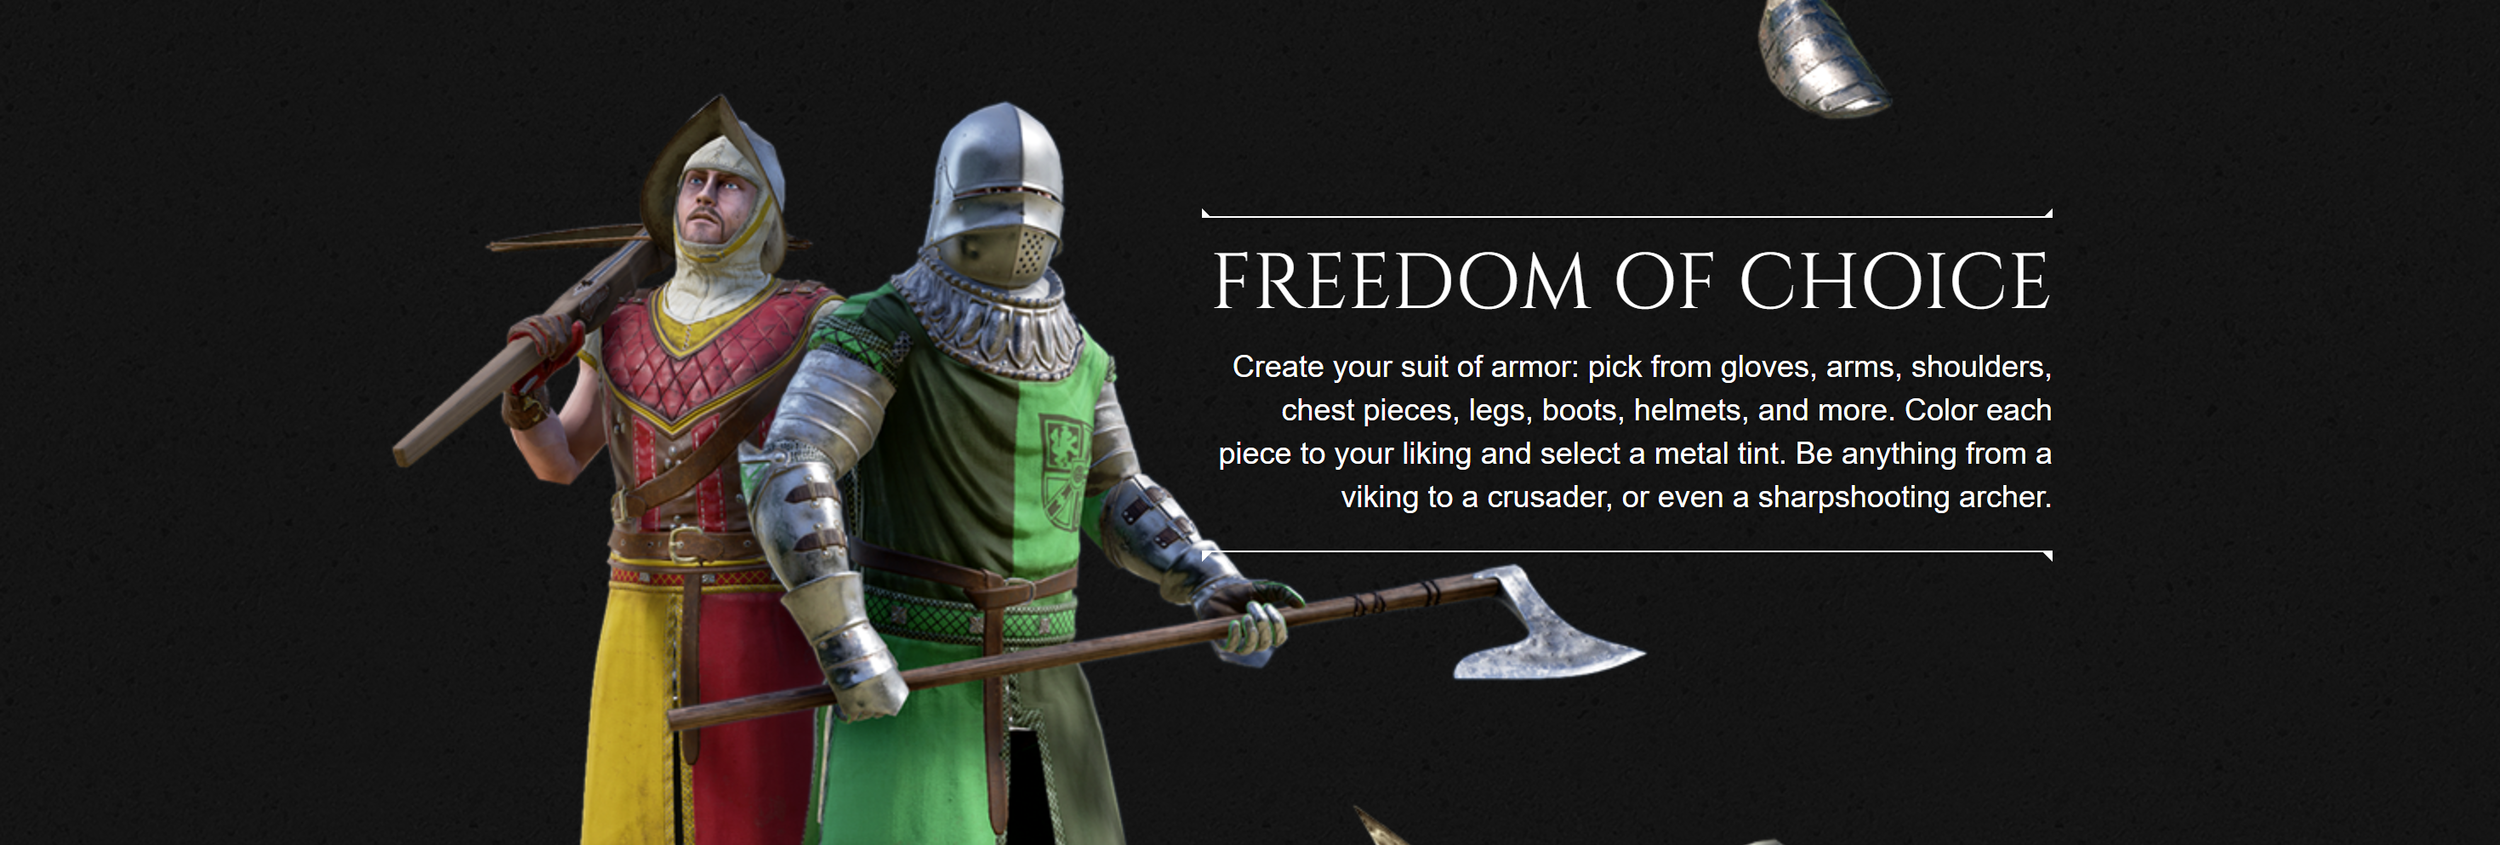 Screen capture from Mordhau  official website